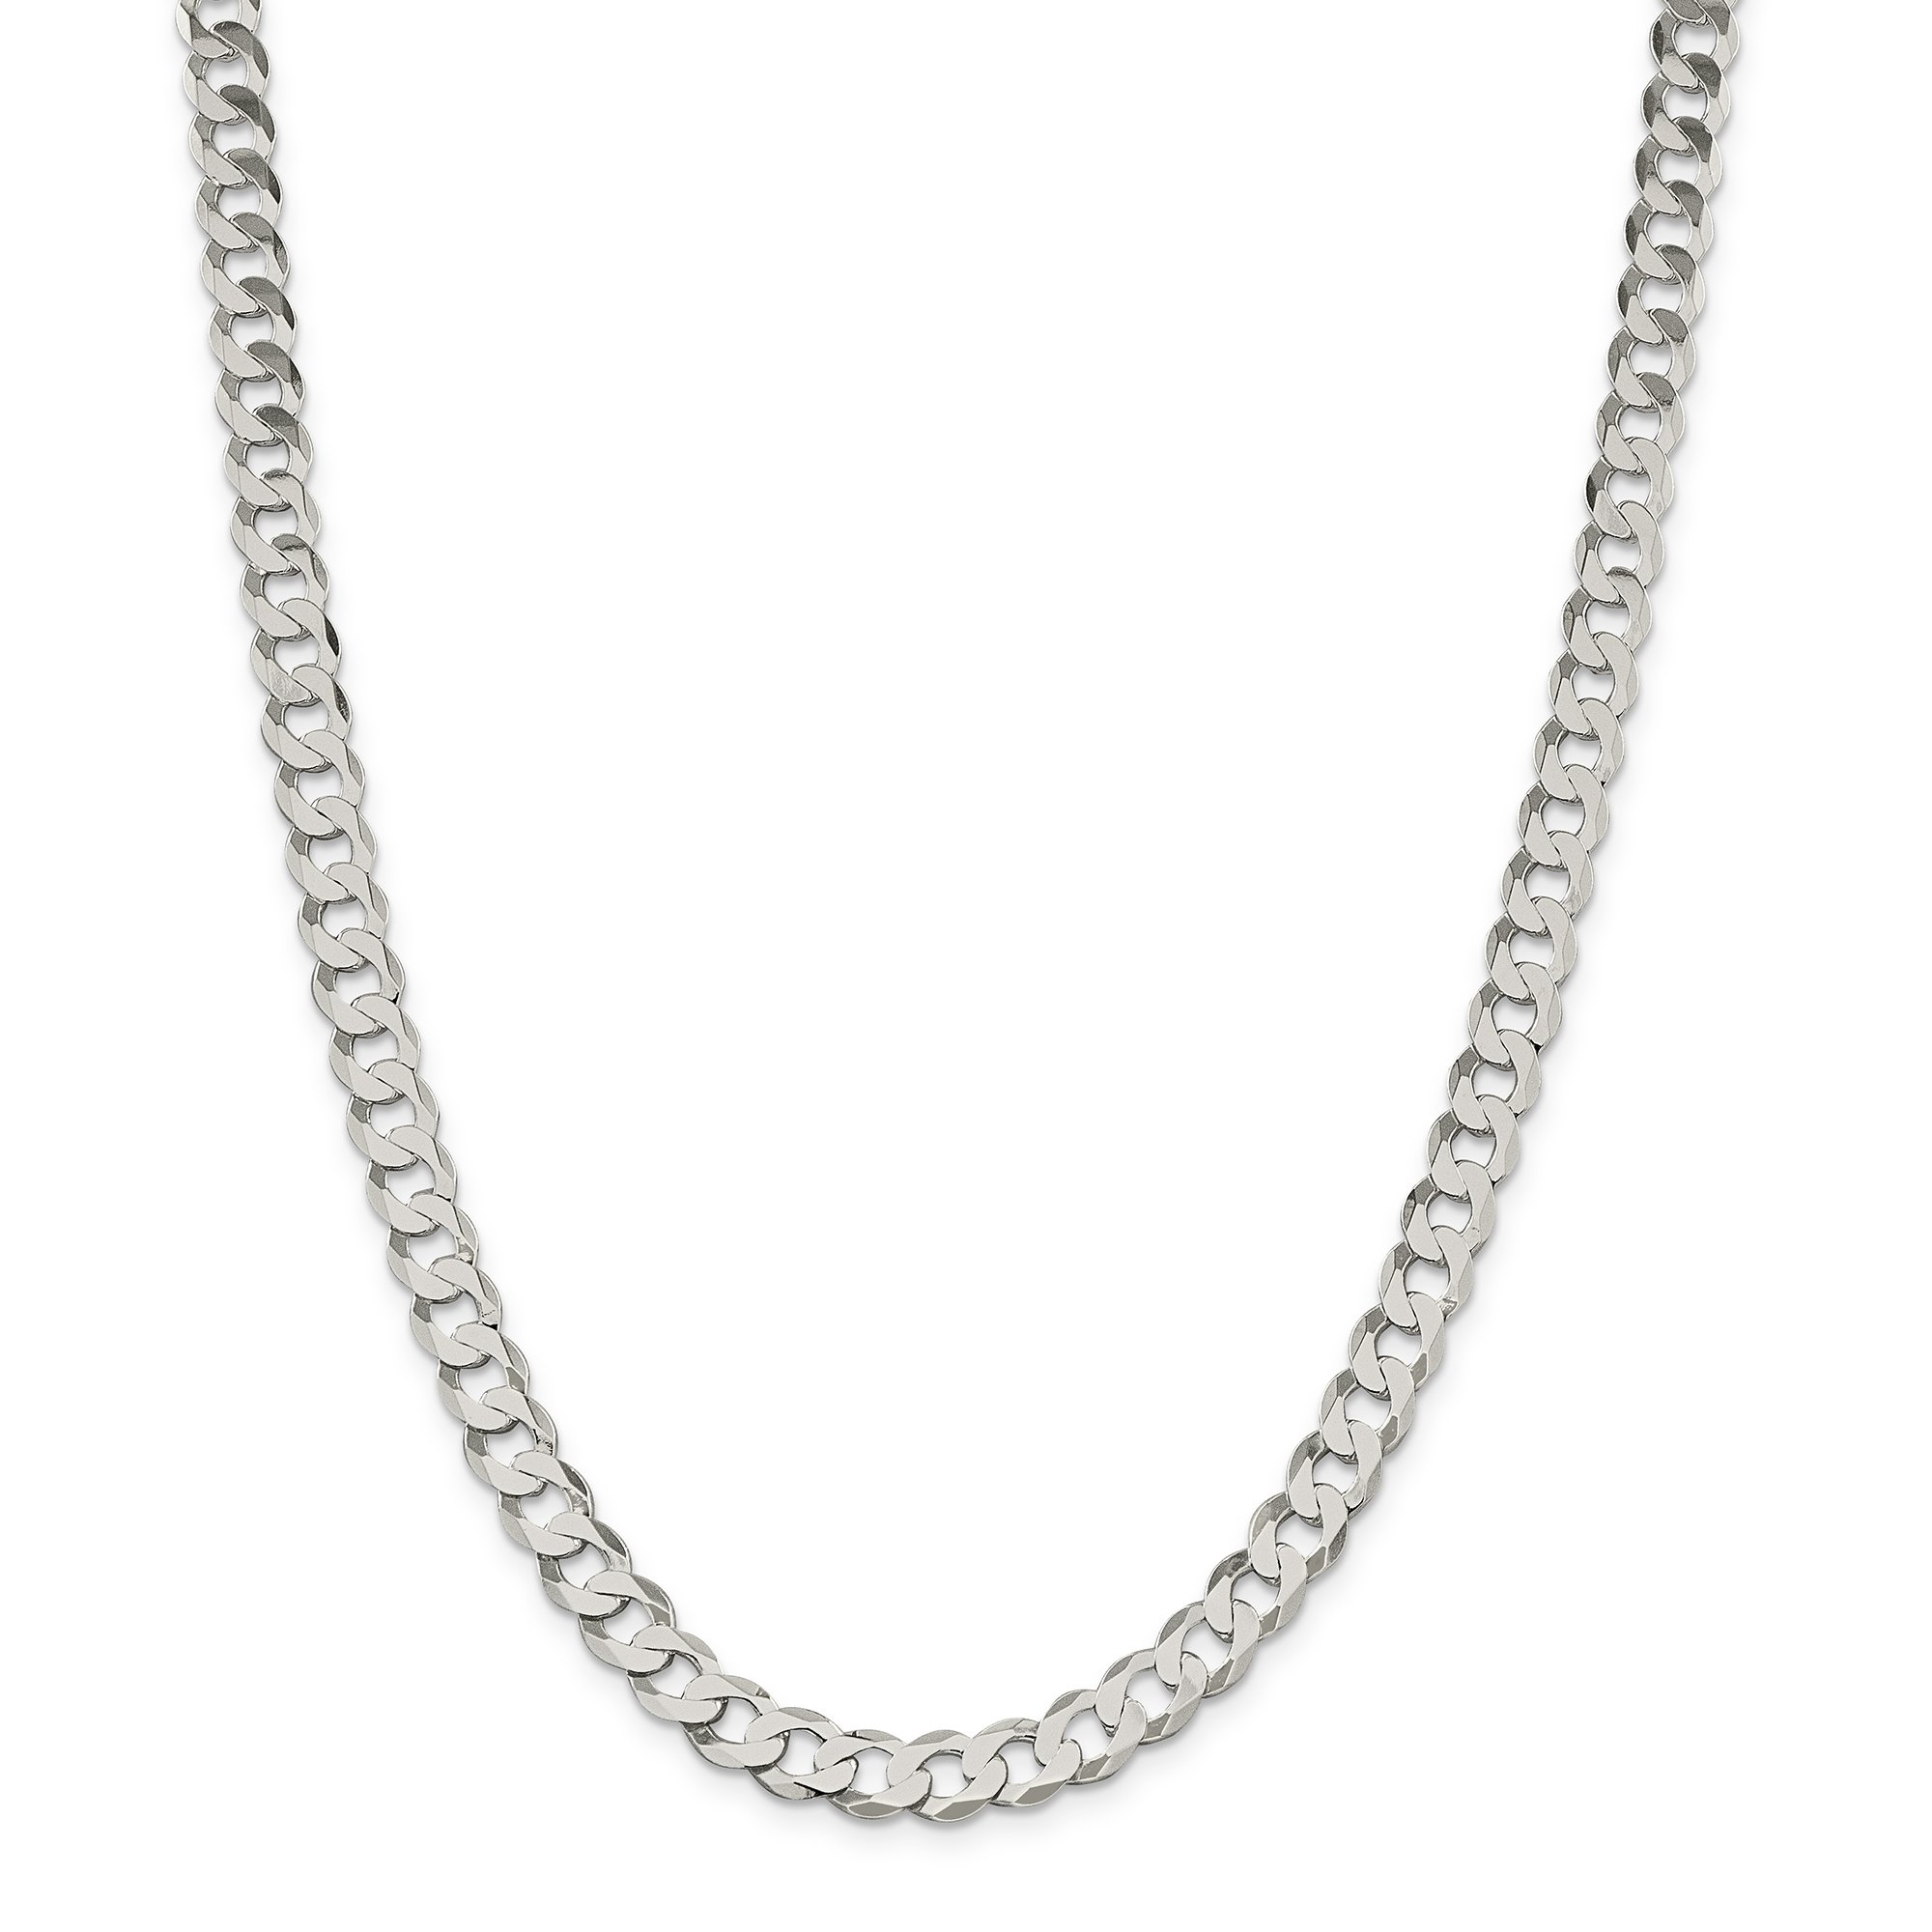 ICE CARATS 925 Sterling Silver 8mm Close Link Flat Curb Chain Necklace 24 Inch Fine Jewelry Gift Set For Women Heart